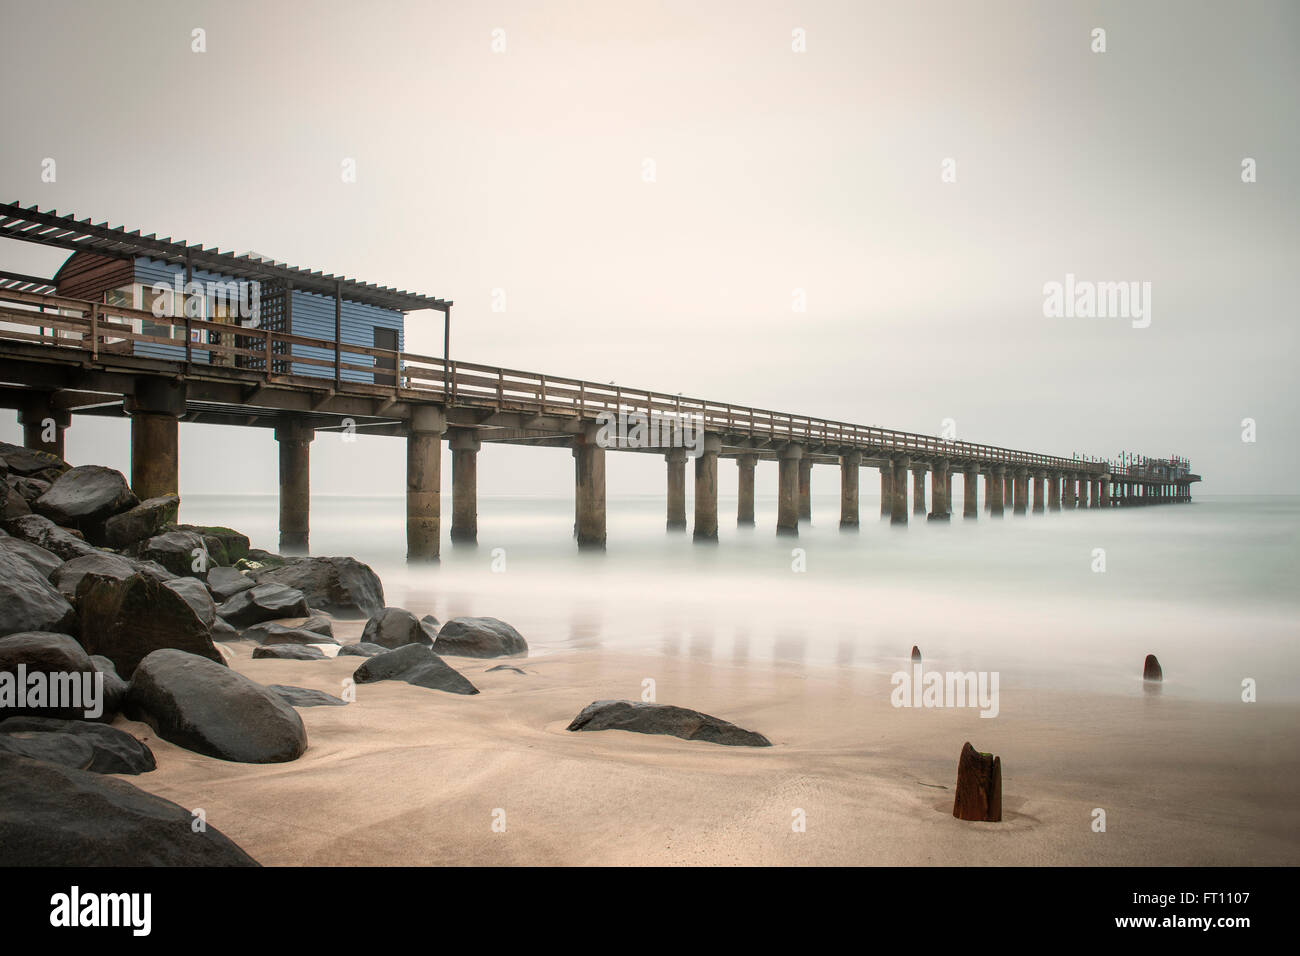 Jetty with restaurant on Swakopmund beach, Namibia, Atlantic Ocean, Africa - Stock Image